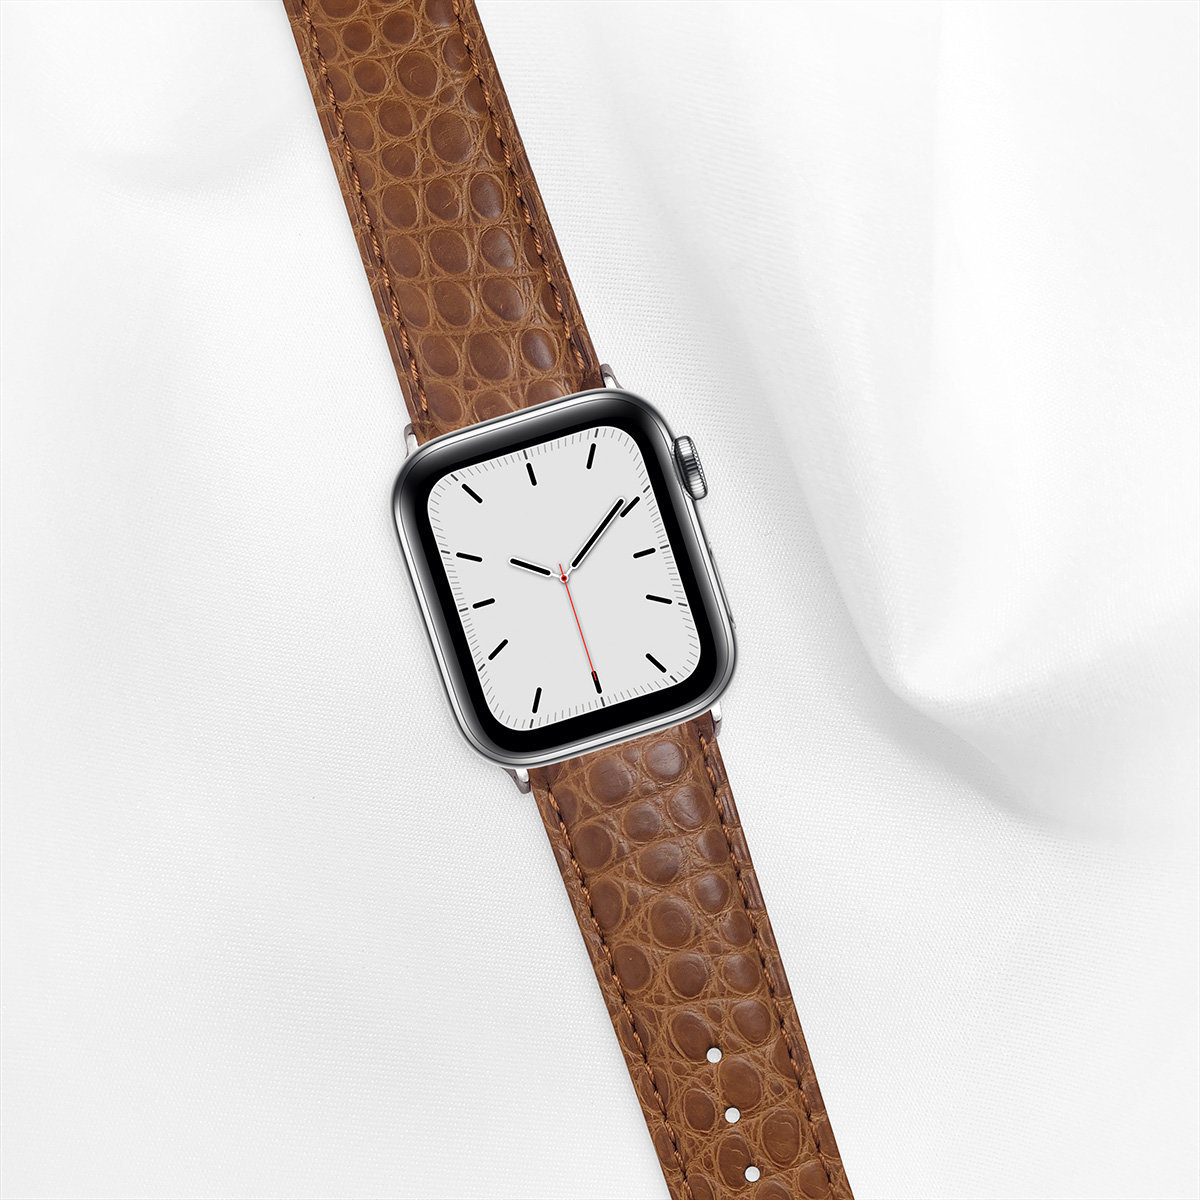 Matte Alligator 40mm Apple Watch 5 Strap, Camel Brown, Round Scales, for Small Casing